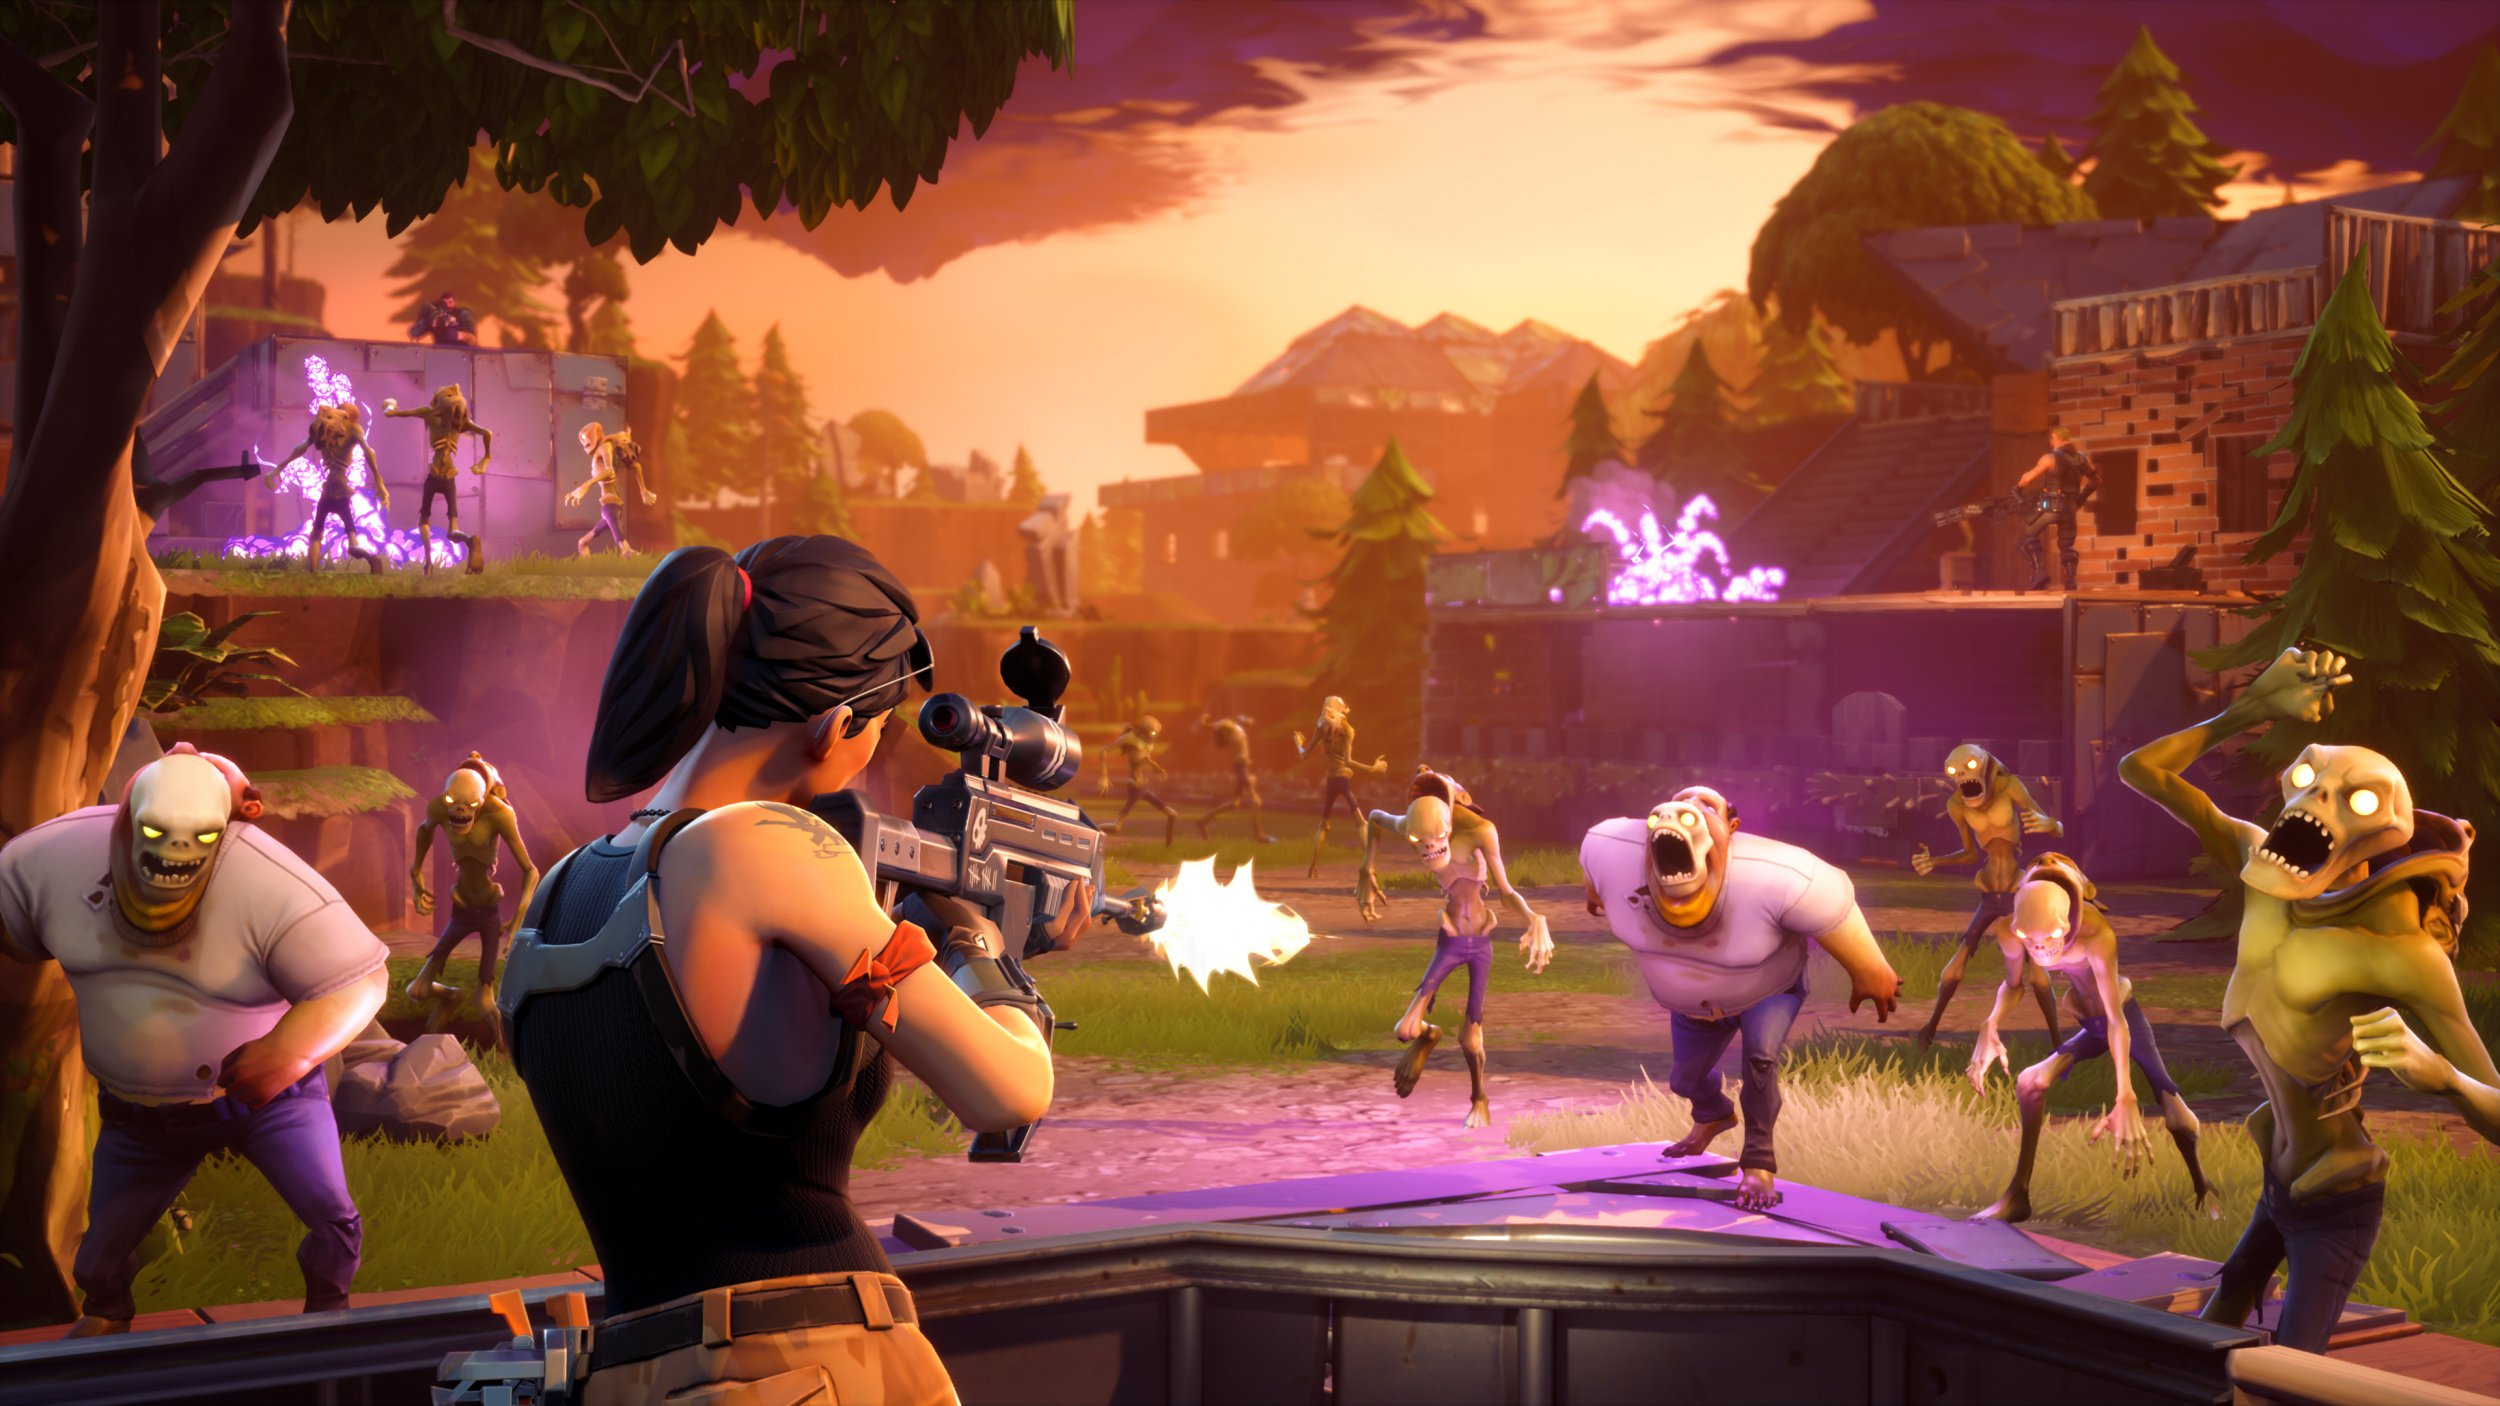 Fortnite voice chat software on Nintendo Switch is now available to all developers